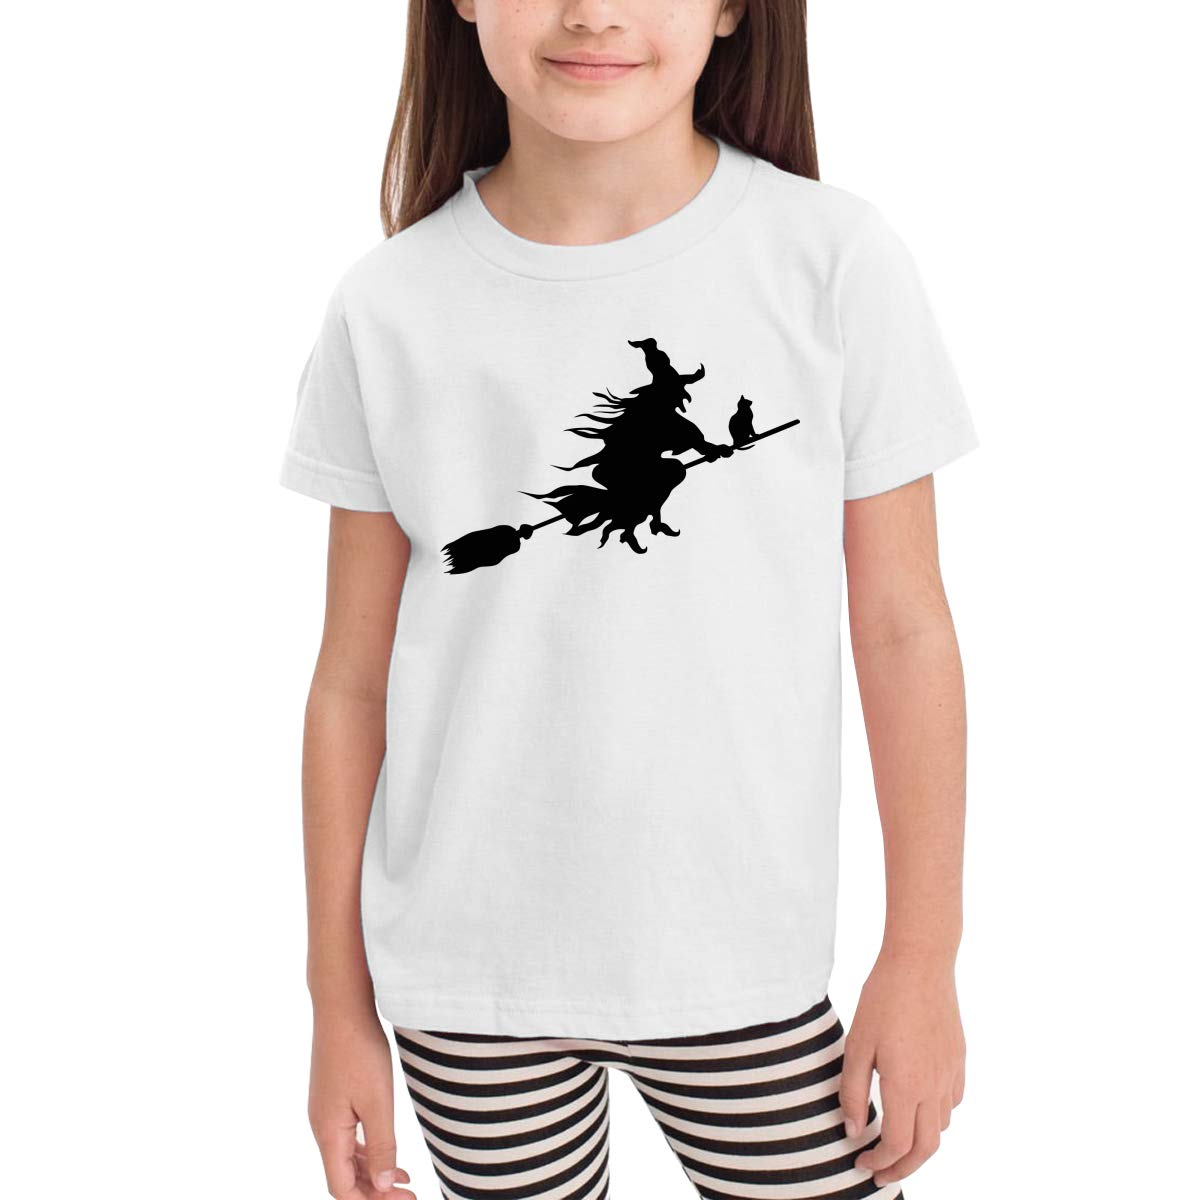 Onlybabycare Witch Evil 100/% Cotton Toddler Baby Boys Girls Kids Short Sleeve T Shirt Top Tee Clothes 2-6 T